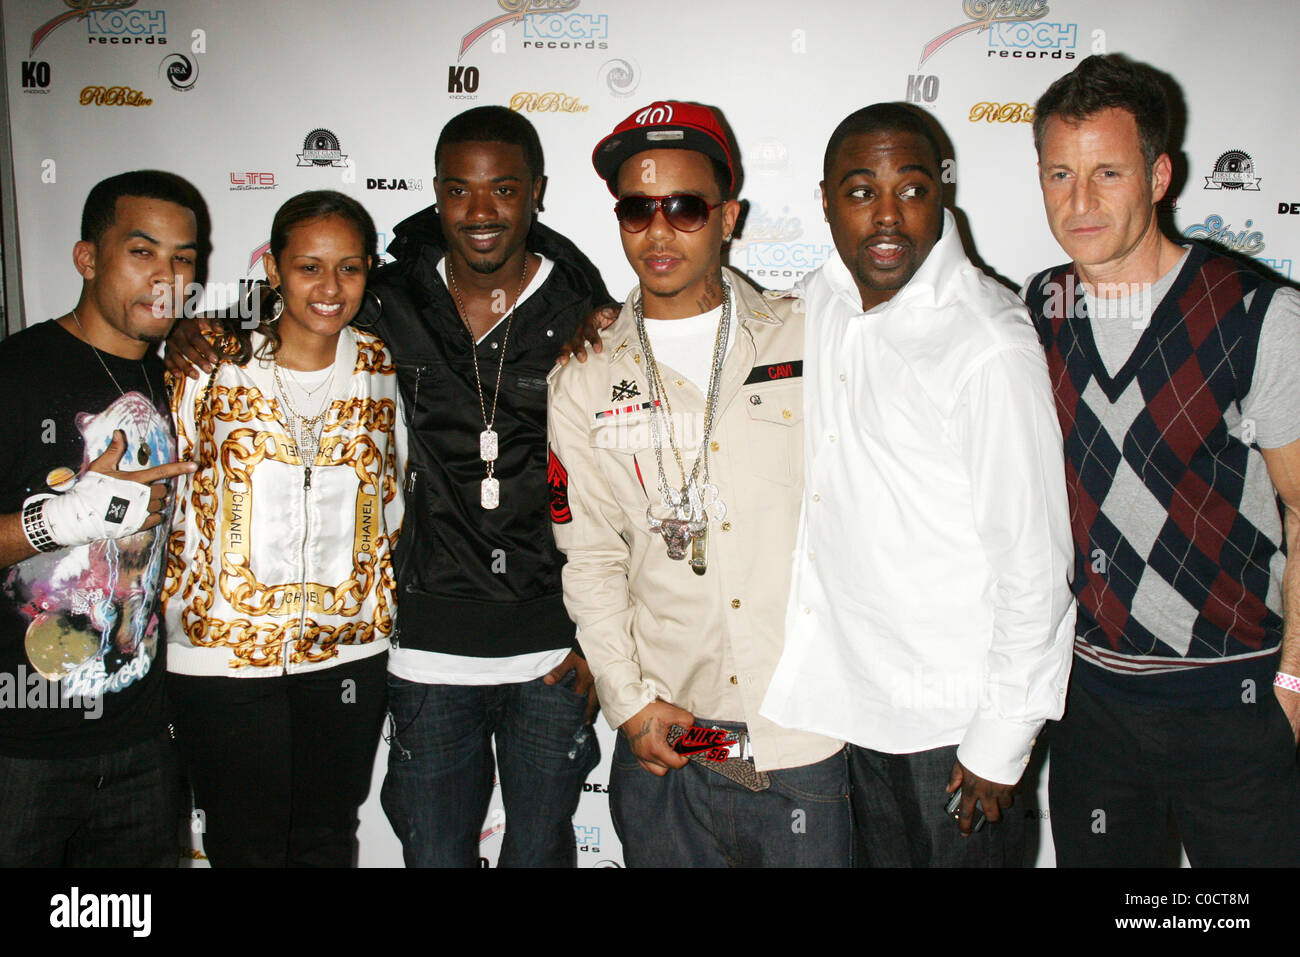 Casley, Asanti Das, Ray J, Yung Berg, Eric Nicks and Guest R&B Live  Presents Ray J at the Spotlight Live, Times Square -